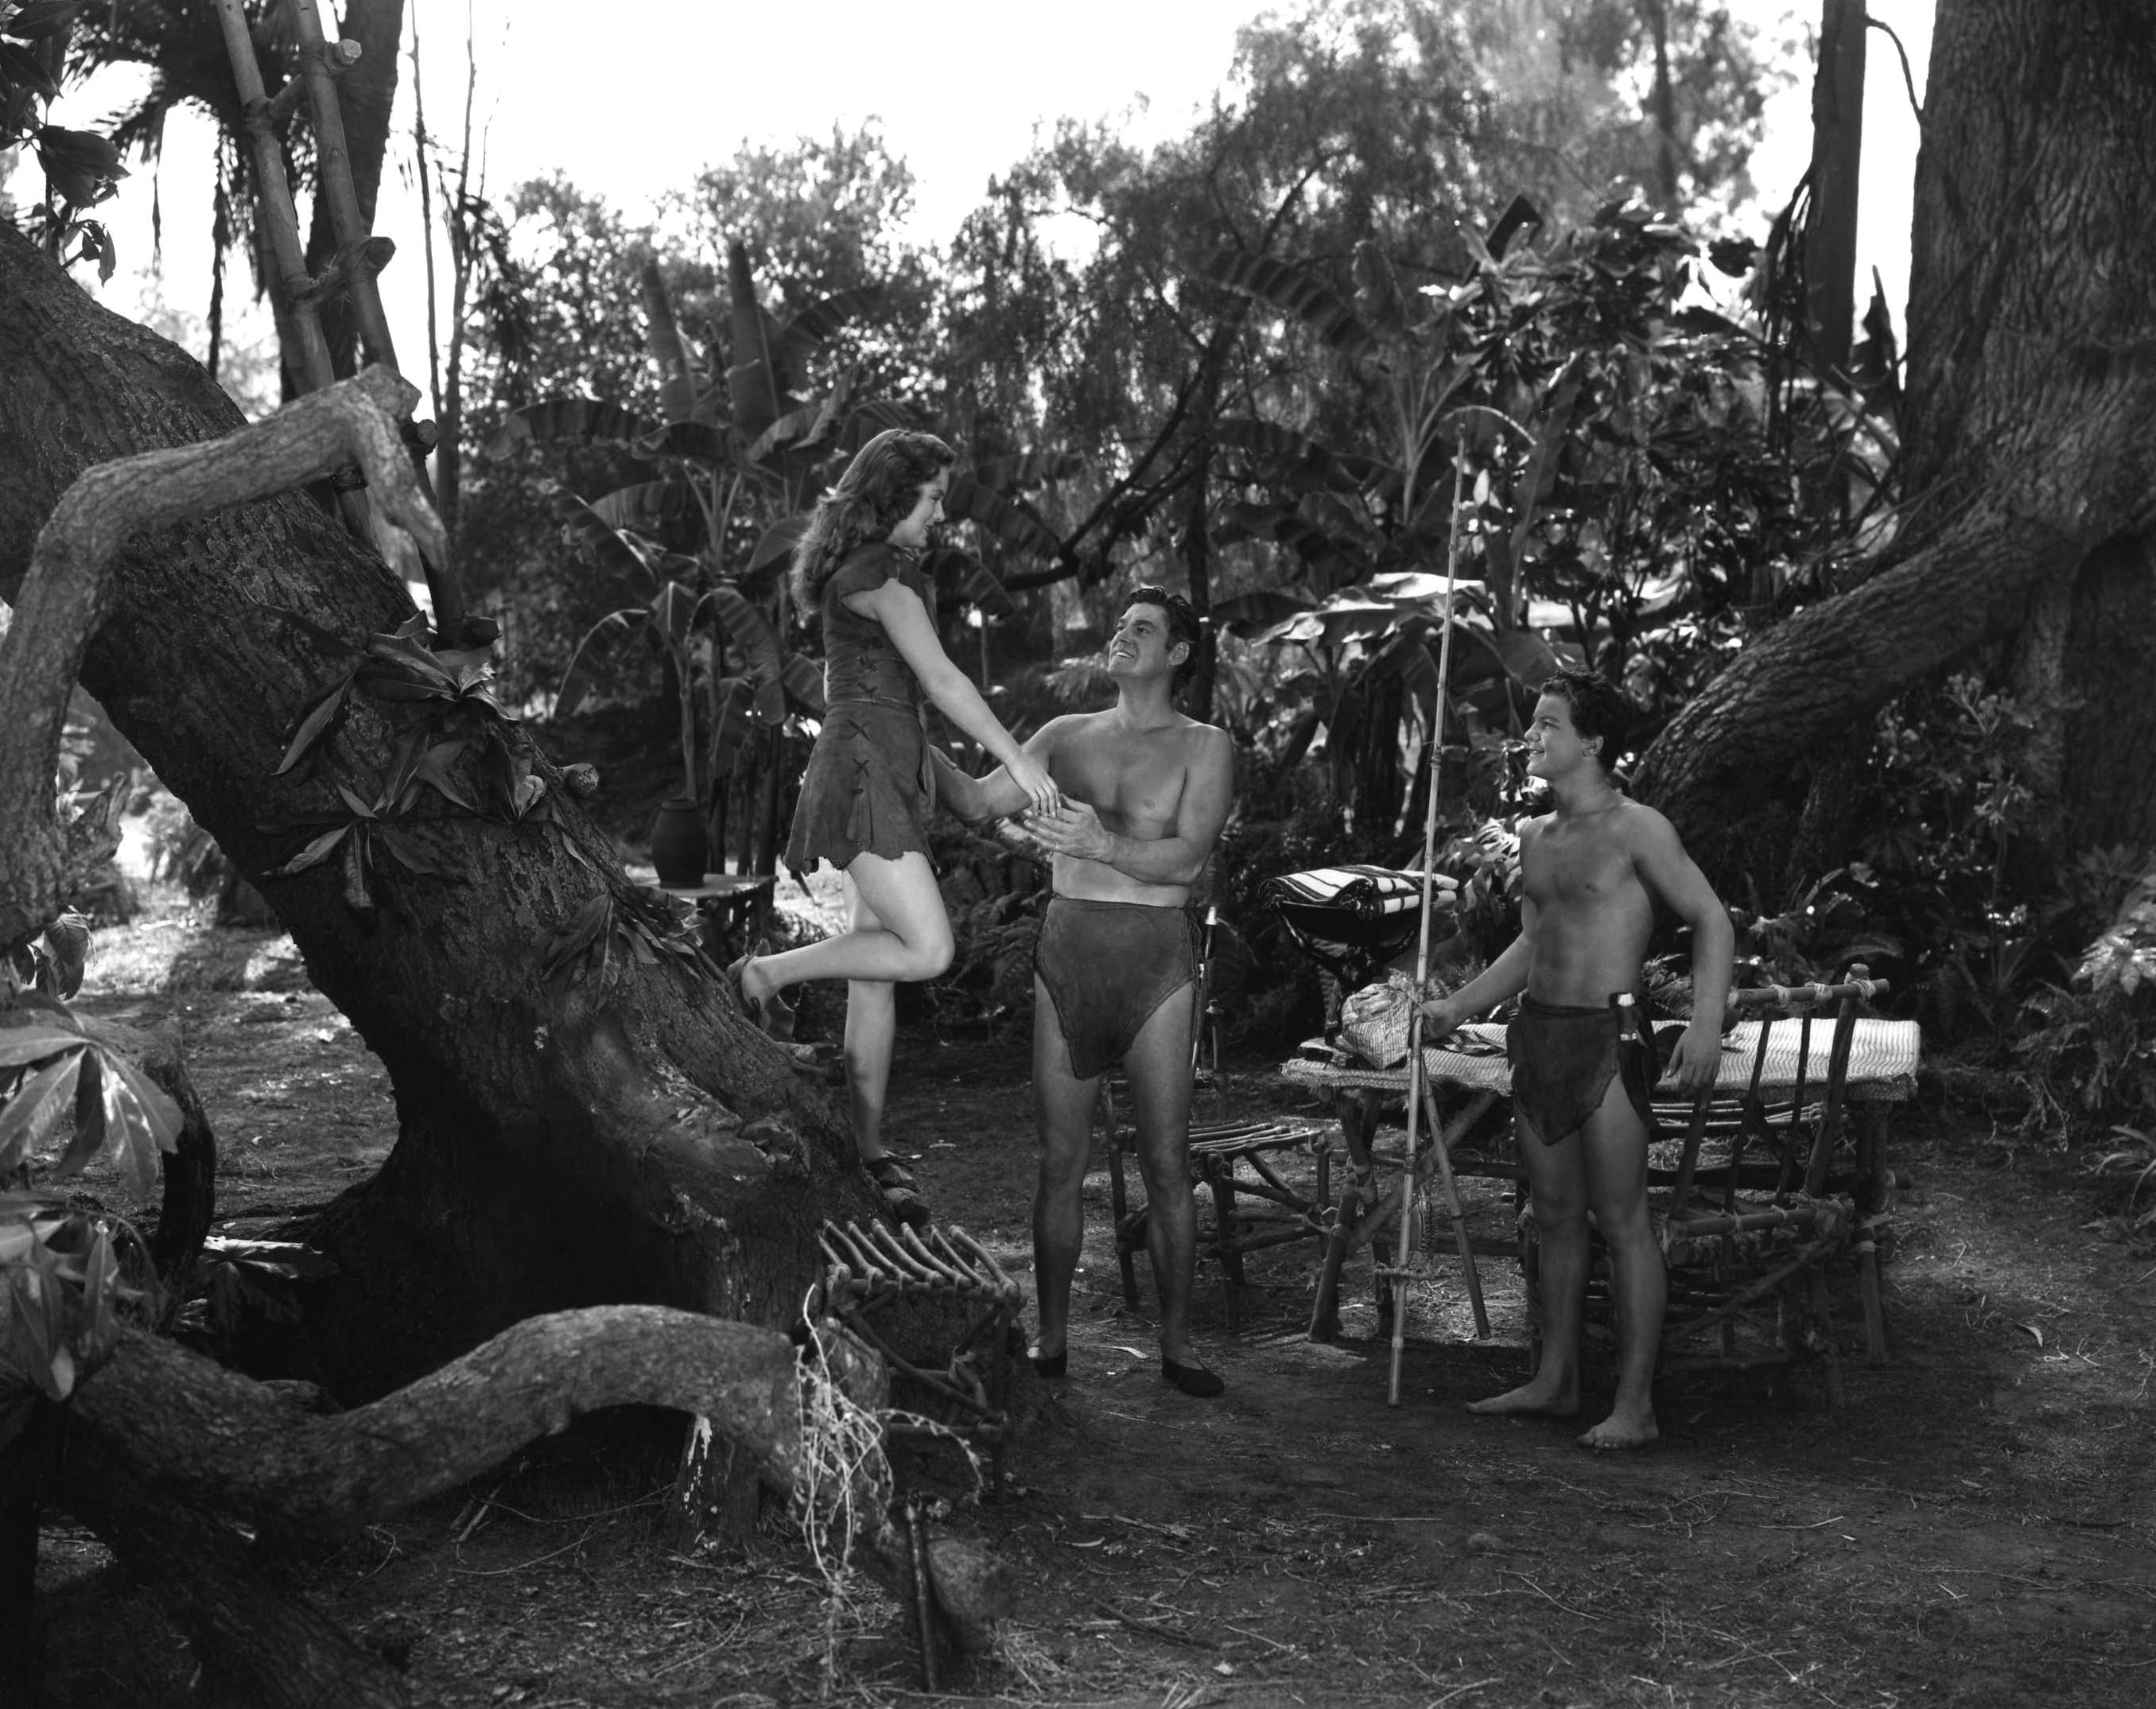 http://www.doctormacro.com/Images/Weissmuller,%20Johnny/Annex/Annex%20-%20Weissmuller,%20Johnny%20(Tarzan%20and%20the%20Huntress)_02.jpg